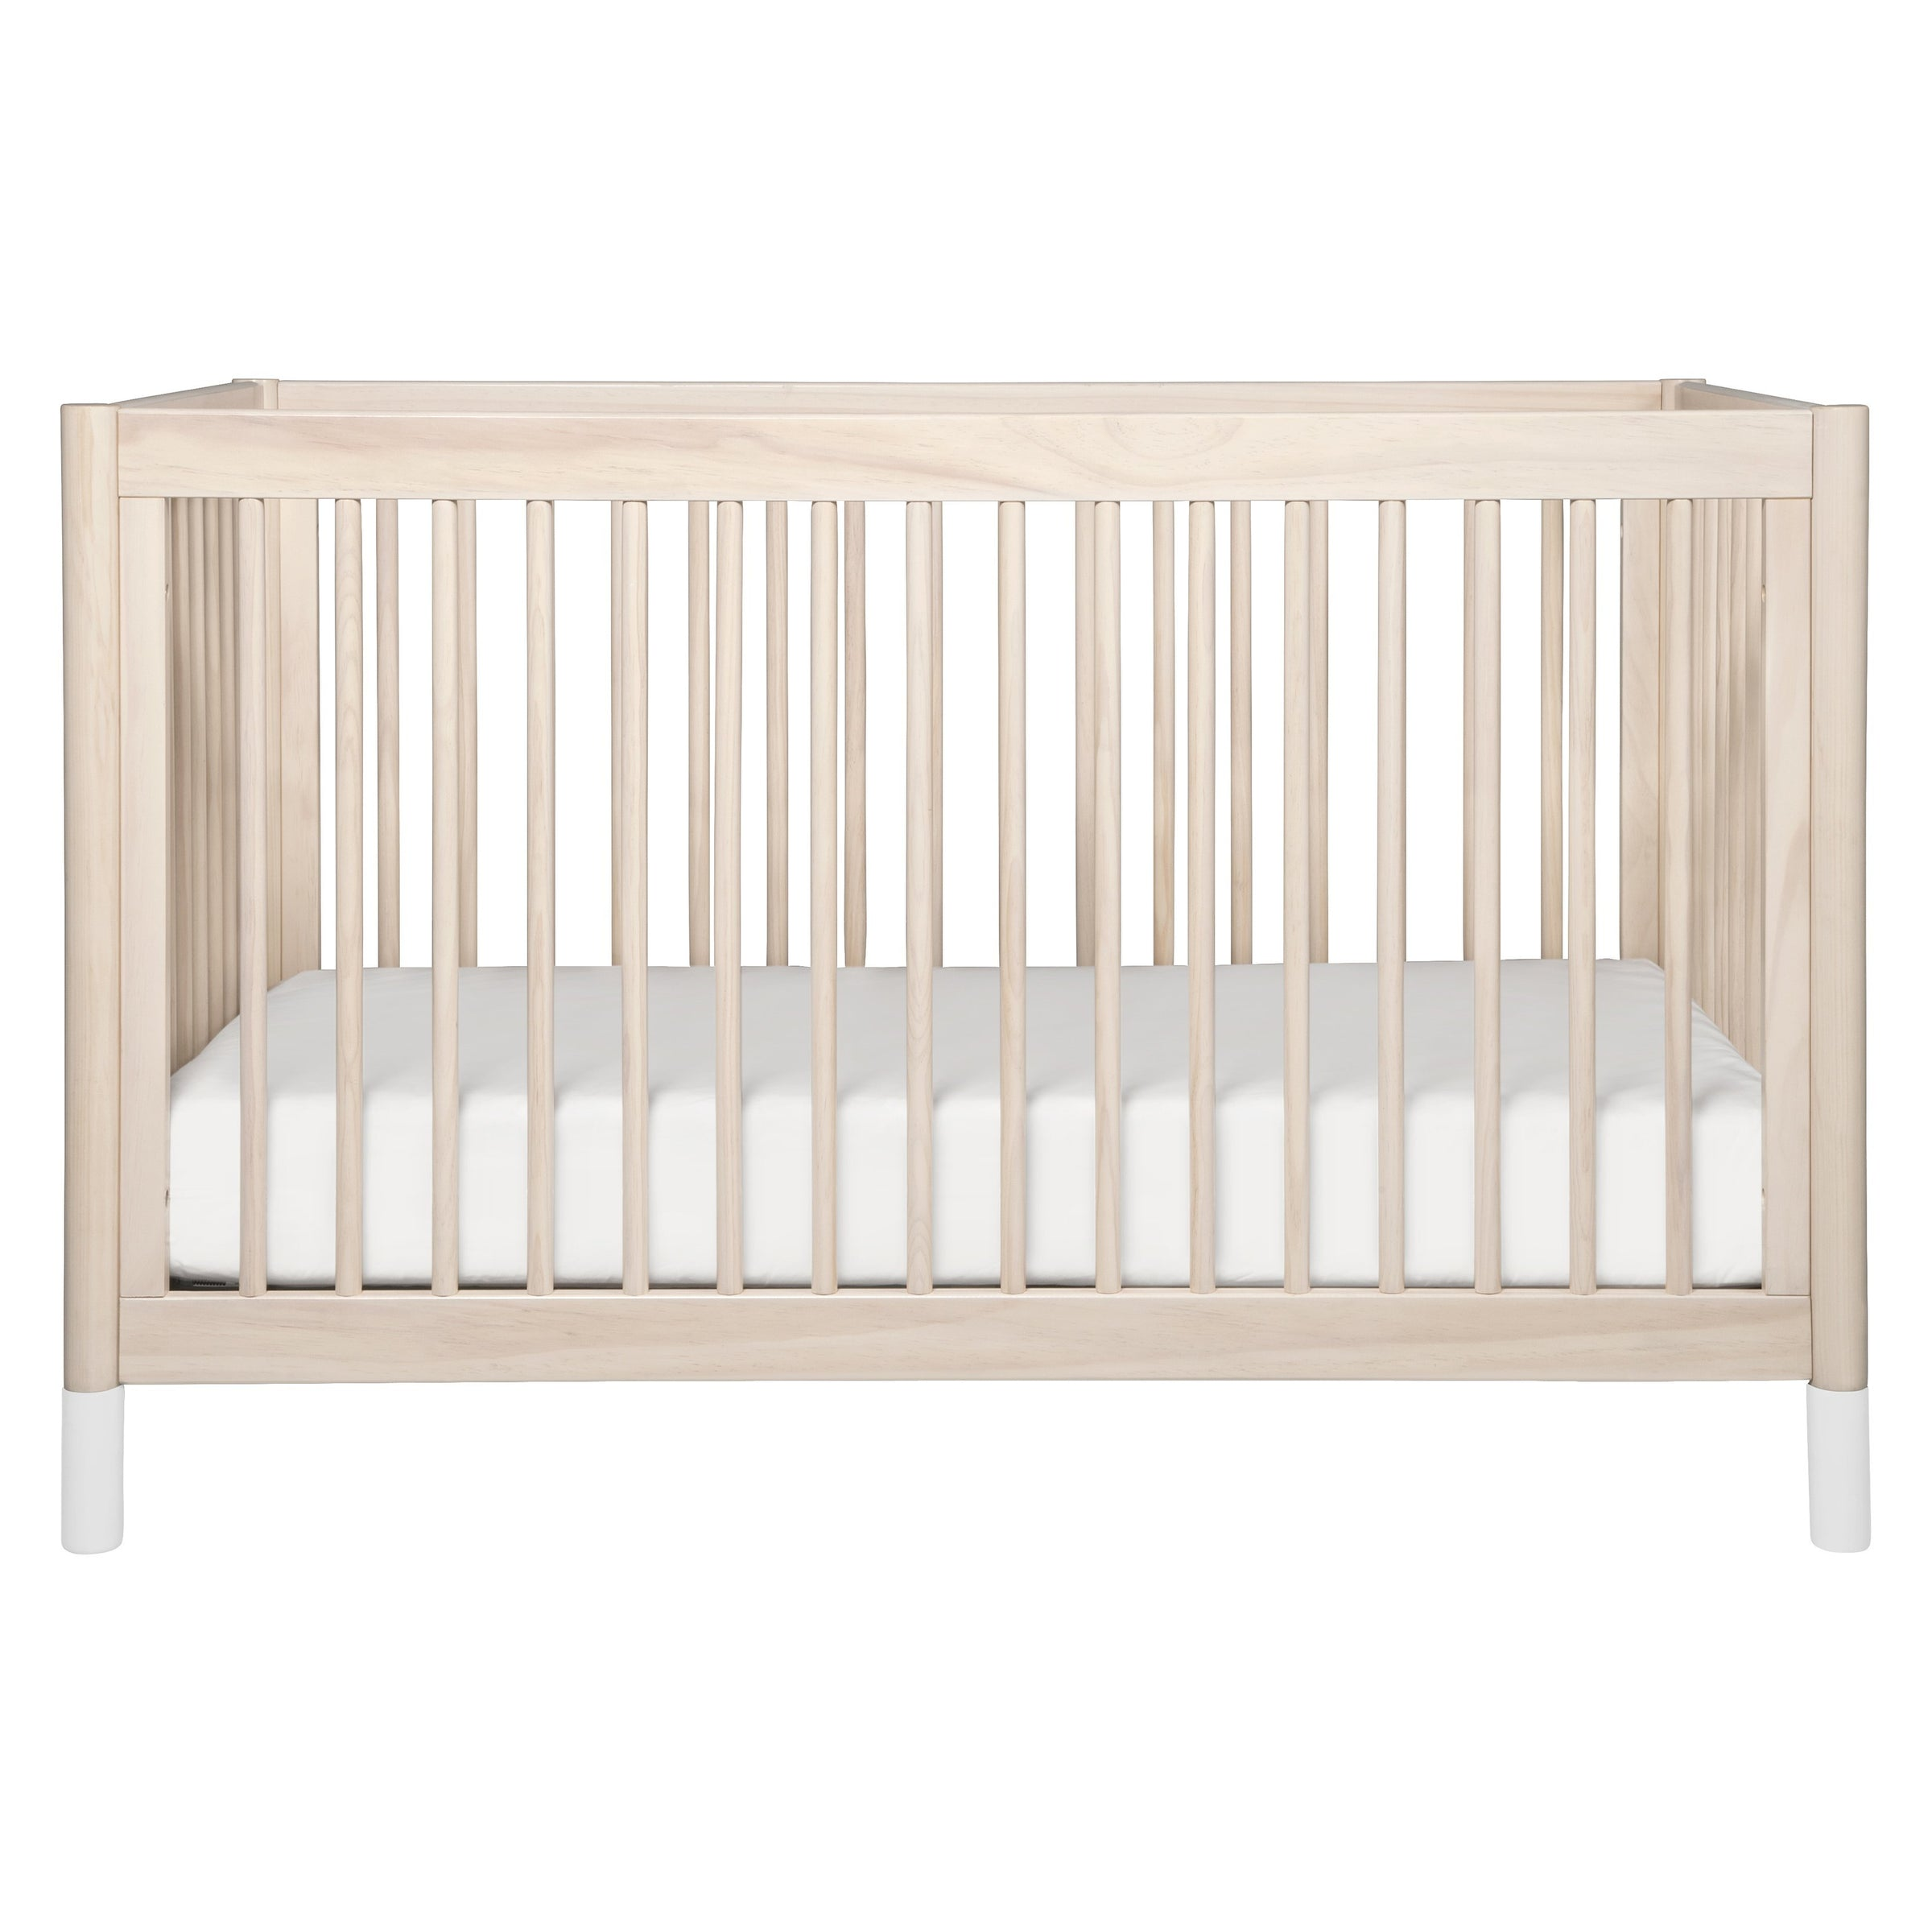 Babyletto Gelato 4 In 1 Crib With Toddler Bed Conversion Kit Project Nursery